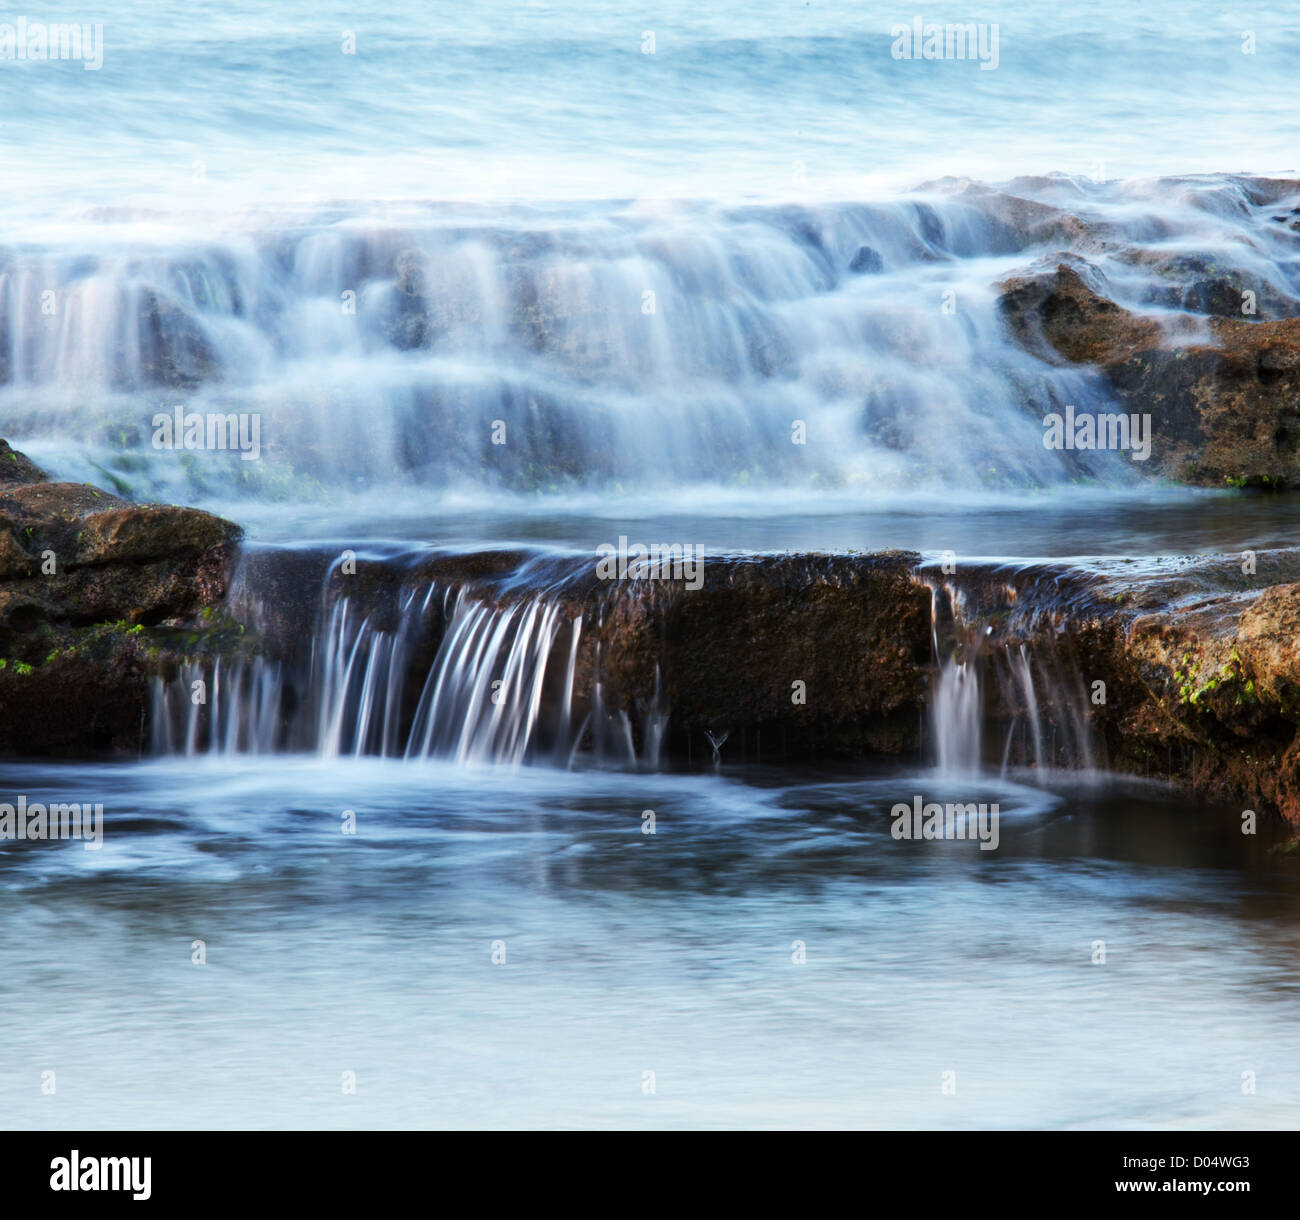 Water cascade - Stock Image